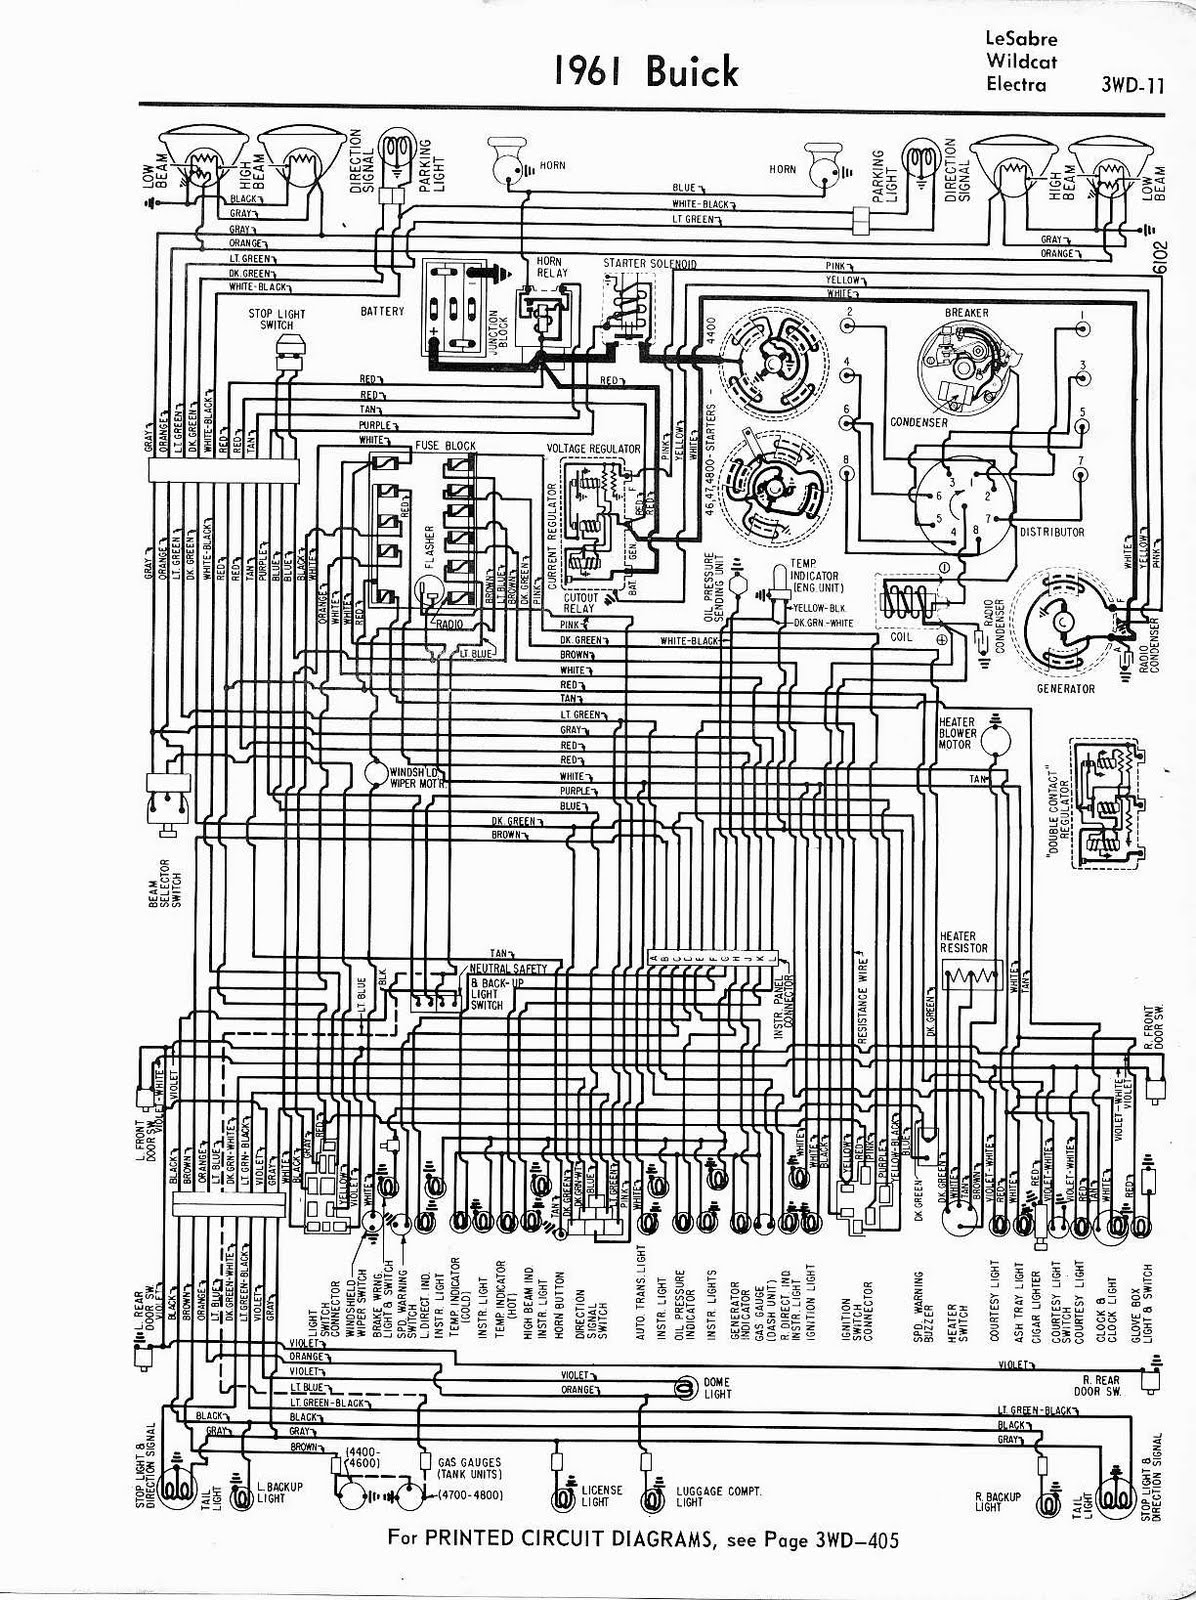 1961 Buick Lesabre Wildcat Electra on triumph 500 wiring diagram